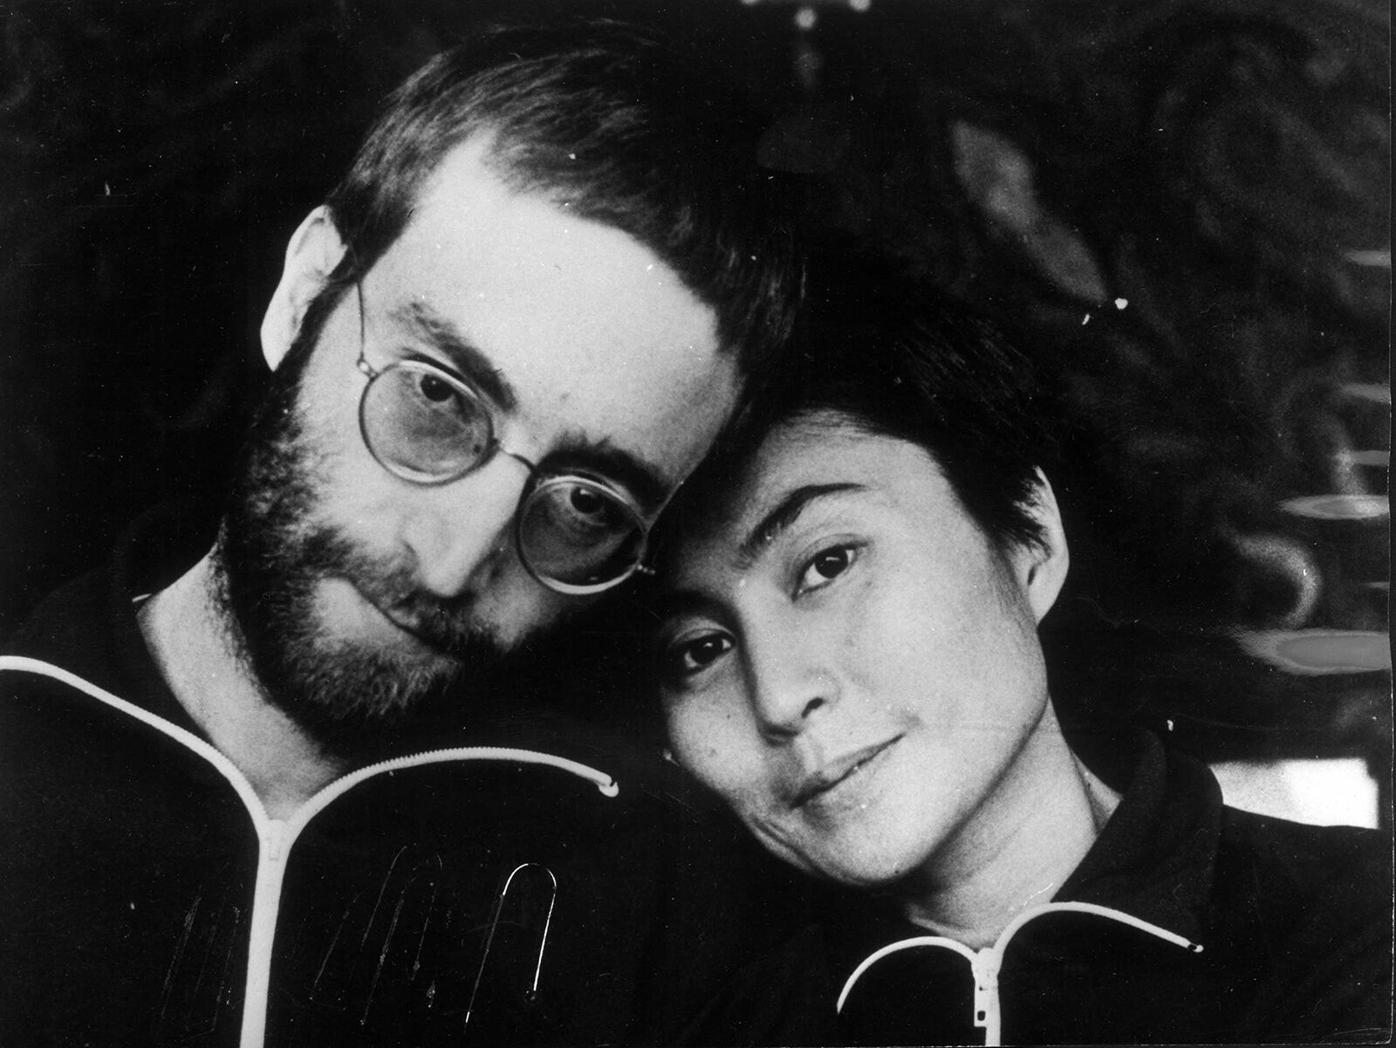 How Primal Scream therapy led to John Lennon's classic debut album